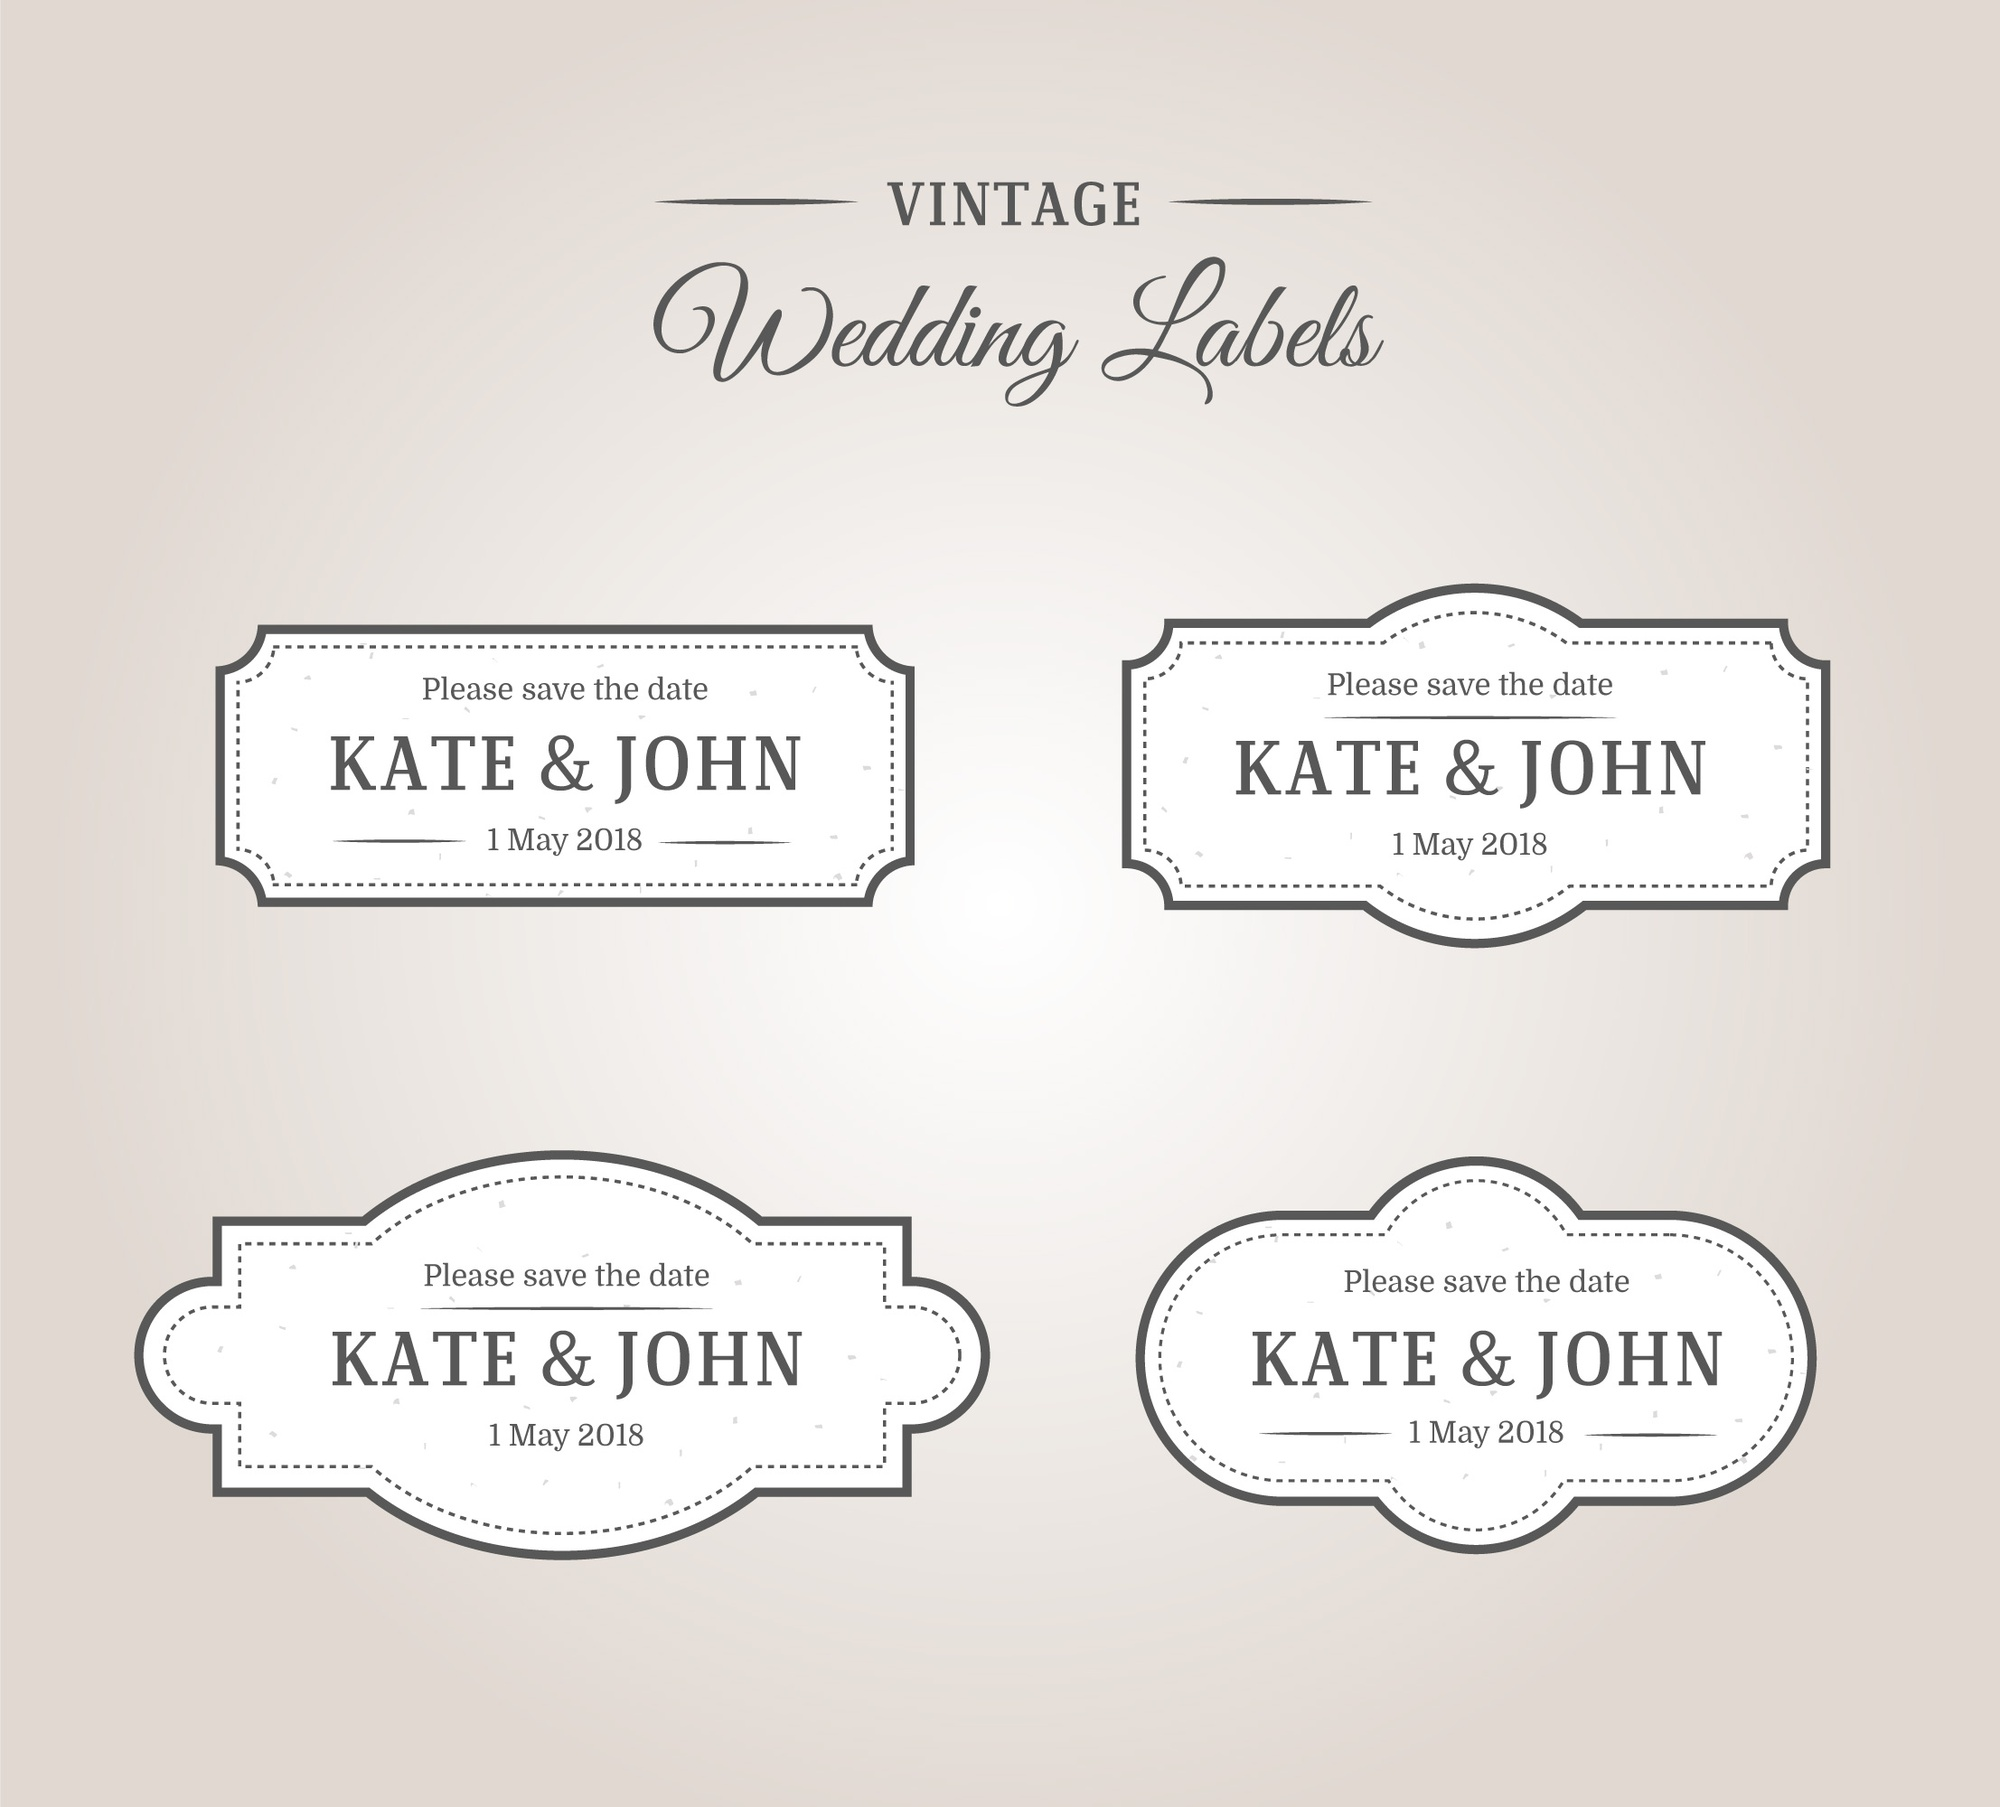 Vintage wedding labels frames